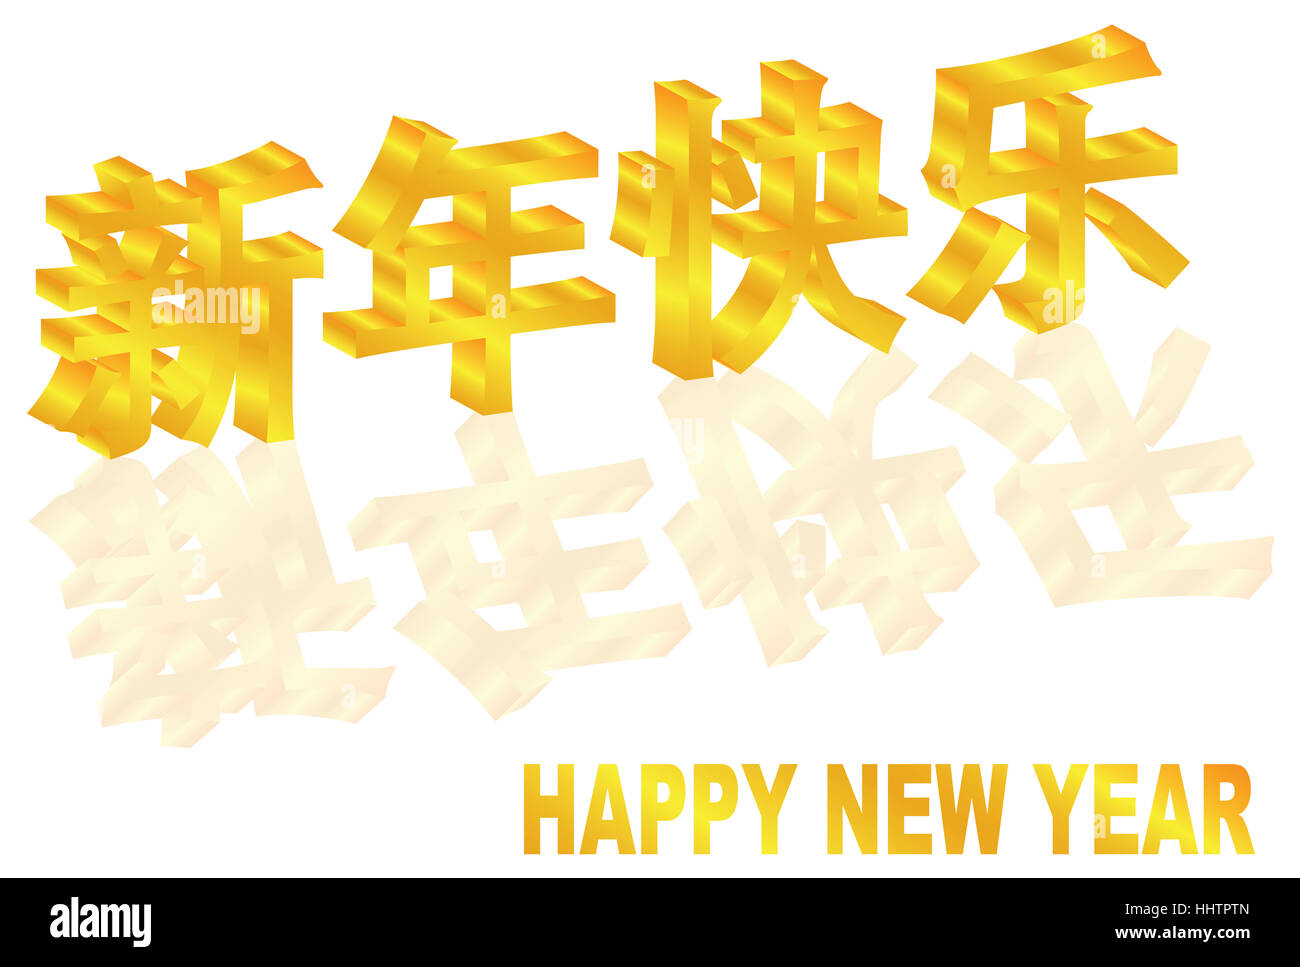 New Year Wishes Stock Photos New Year Wishes Stock Images Alamy